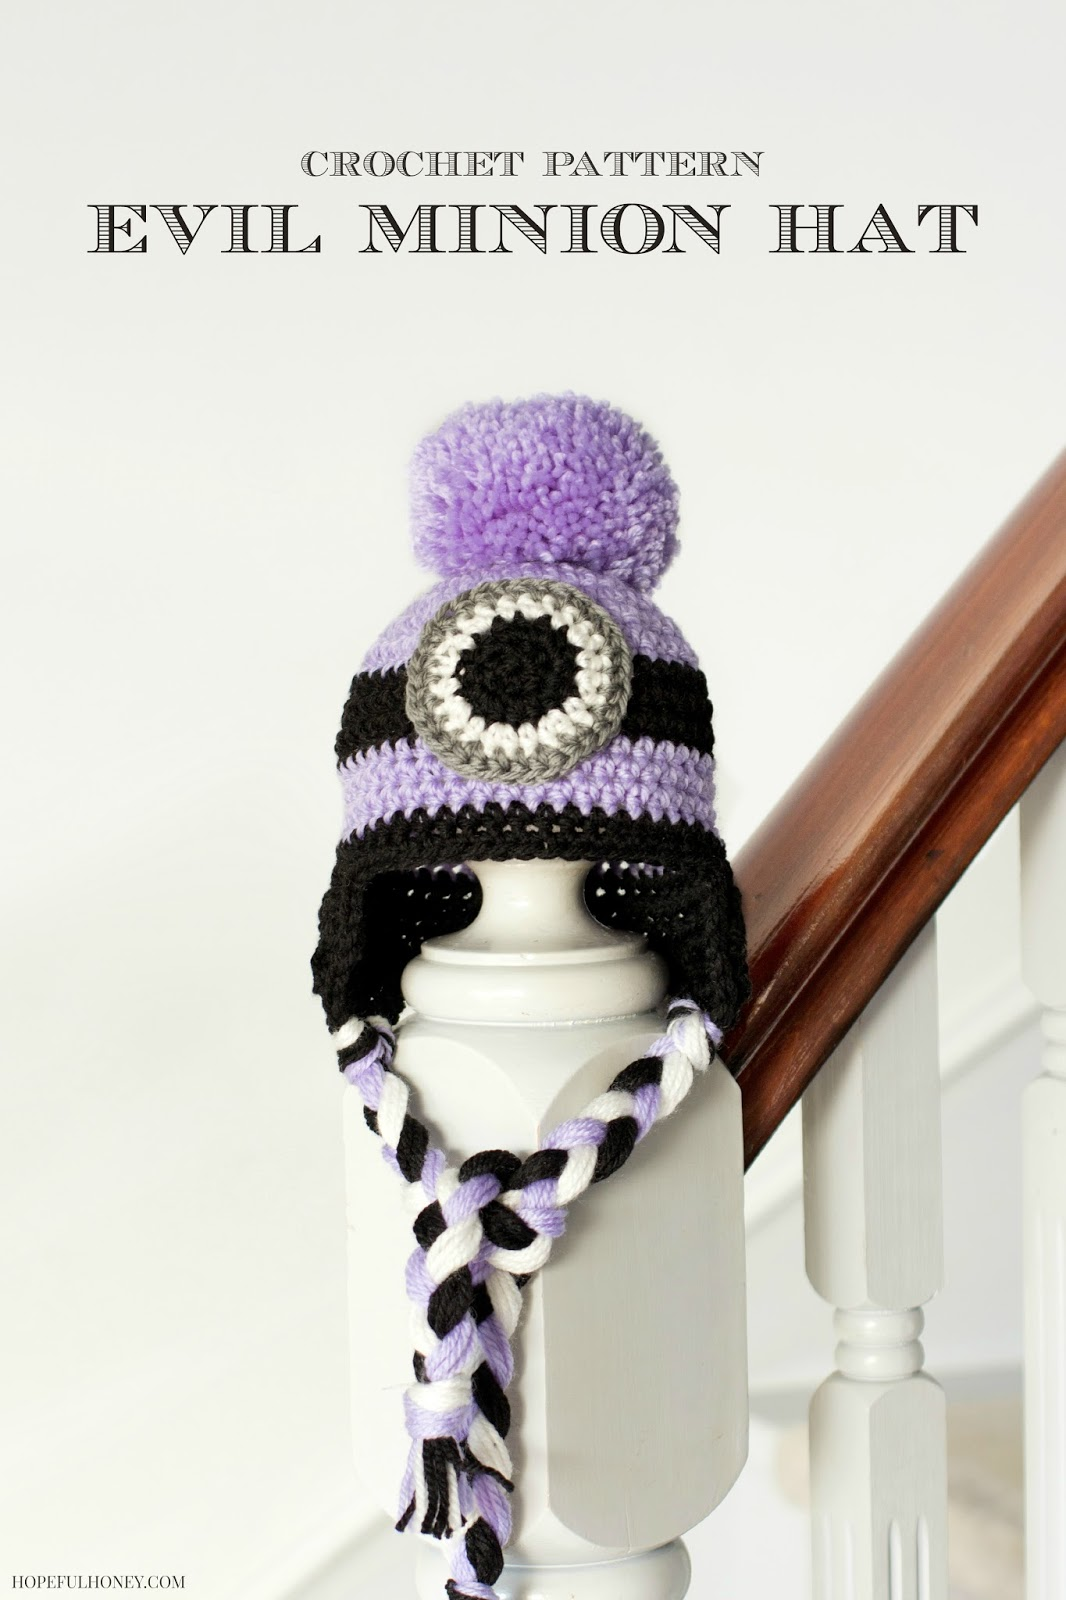 Crochet Baby Minion Hat Pattern : Hopeful Honey Craft, Crochet, Create: Free Minion ...